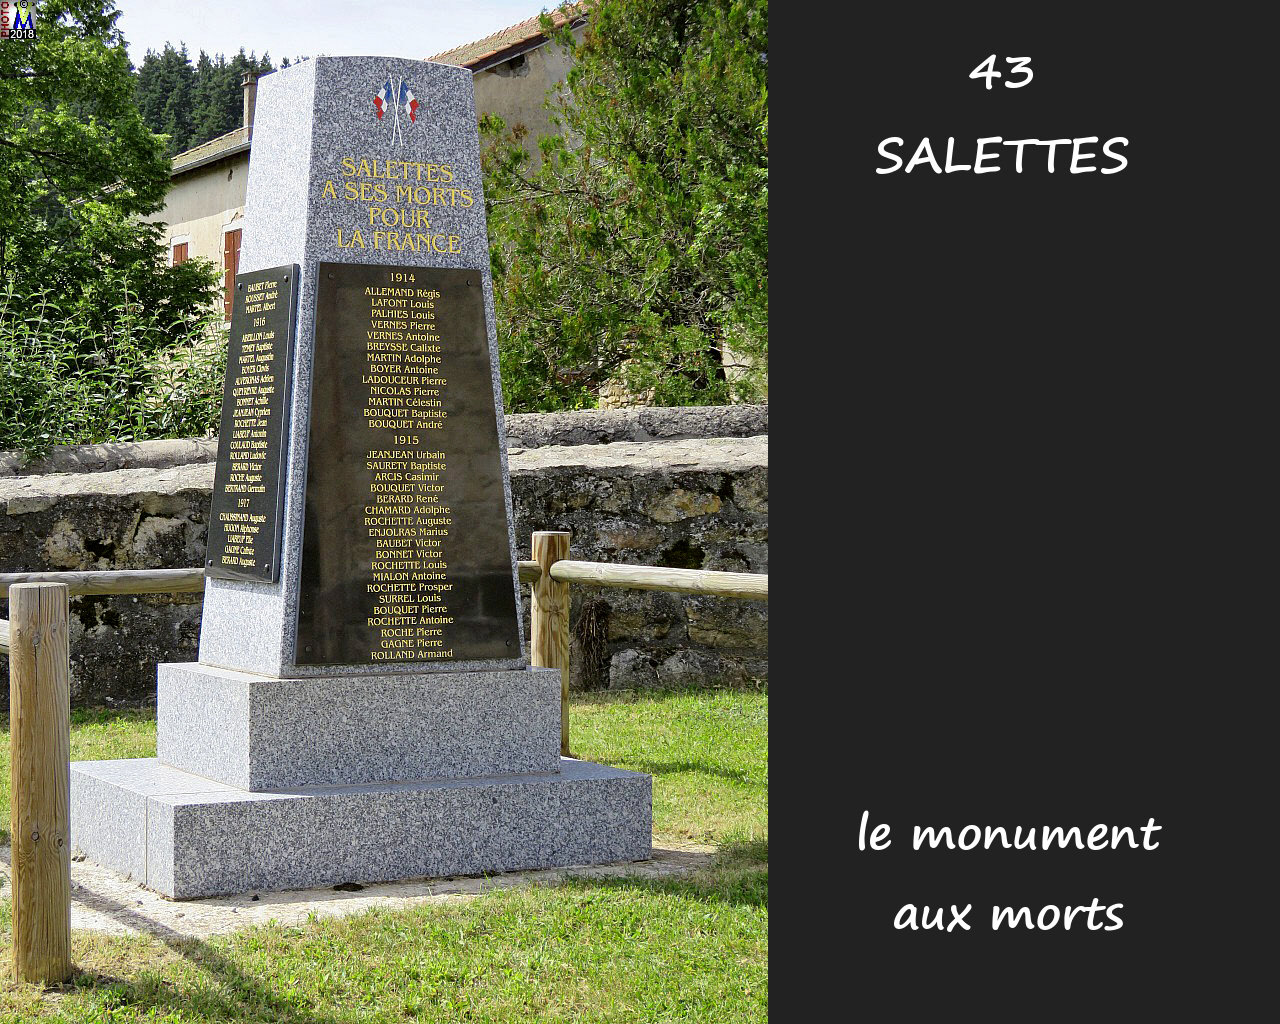 43SALETTES_morts_100.jpg